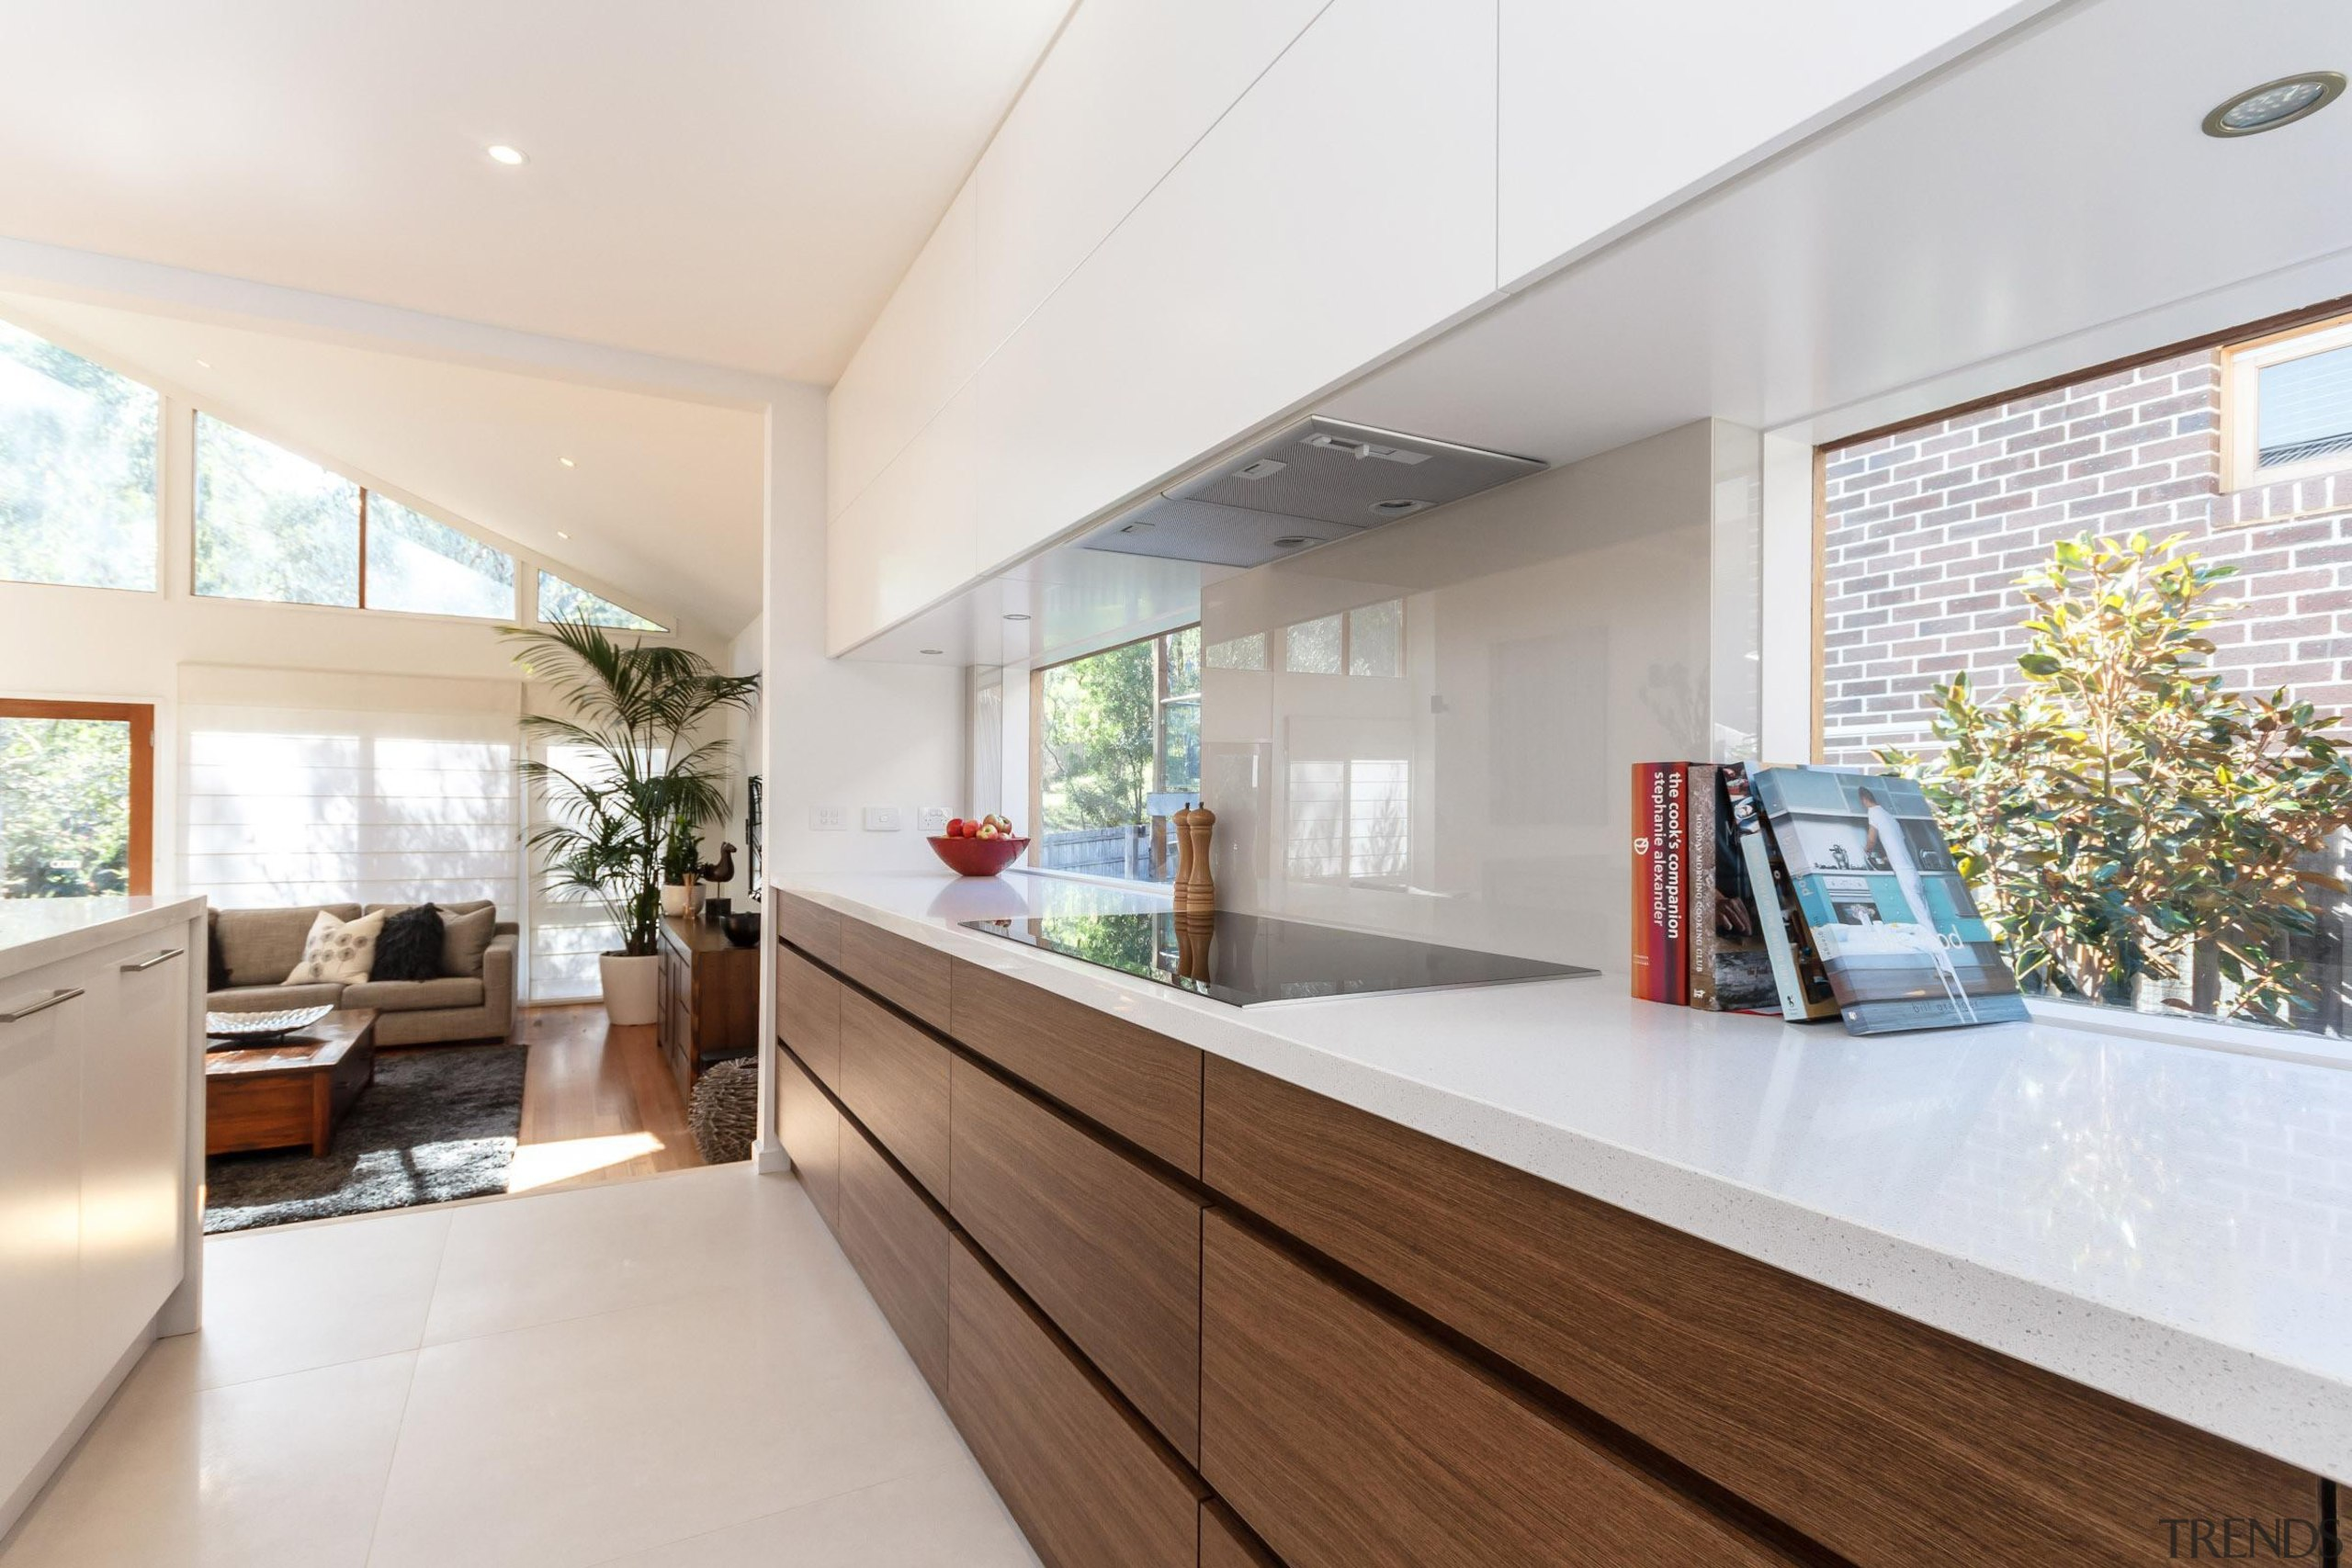 Winner Kitchen Design of the Year 2103 Victoria architecture, countertop, home, house, interior design, kitchen, property, real estate, white